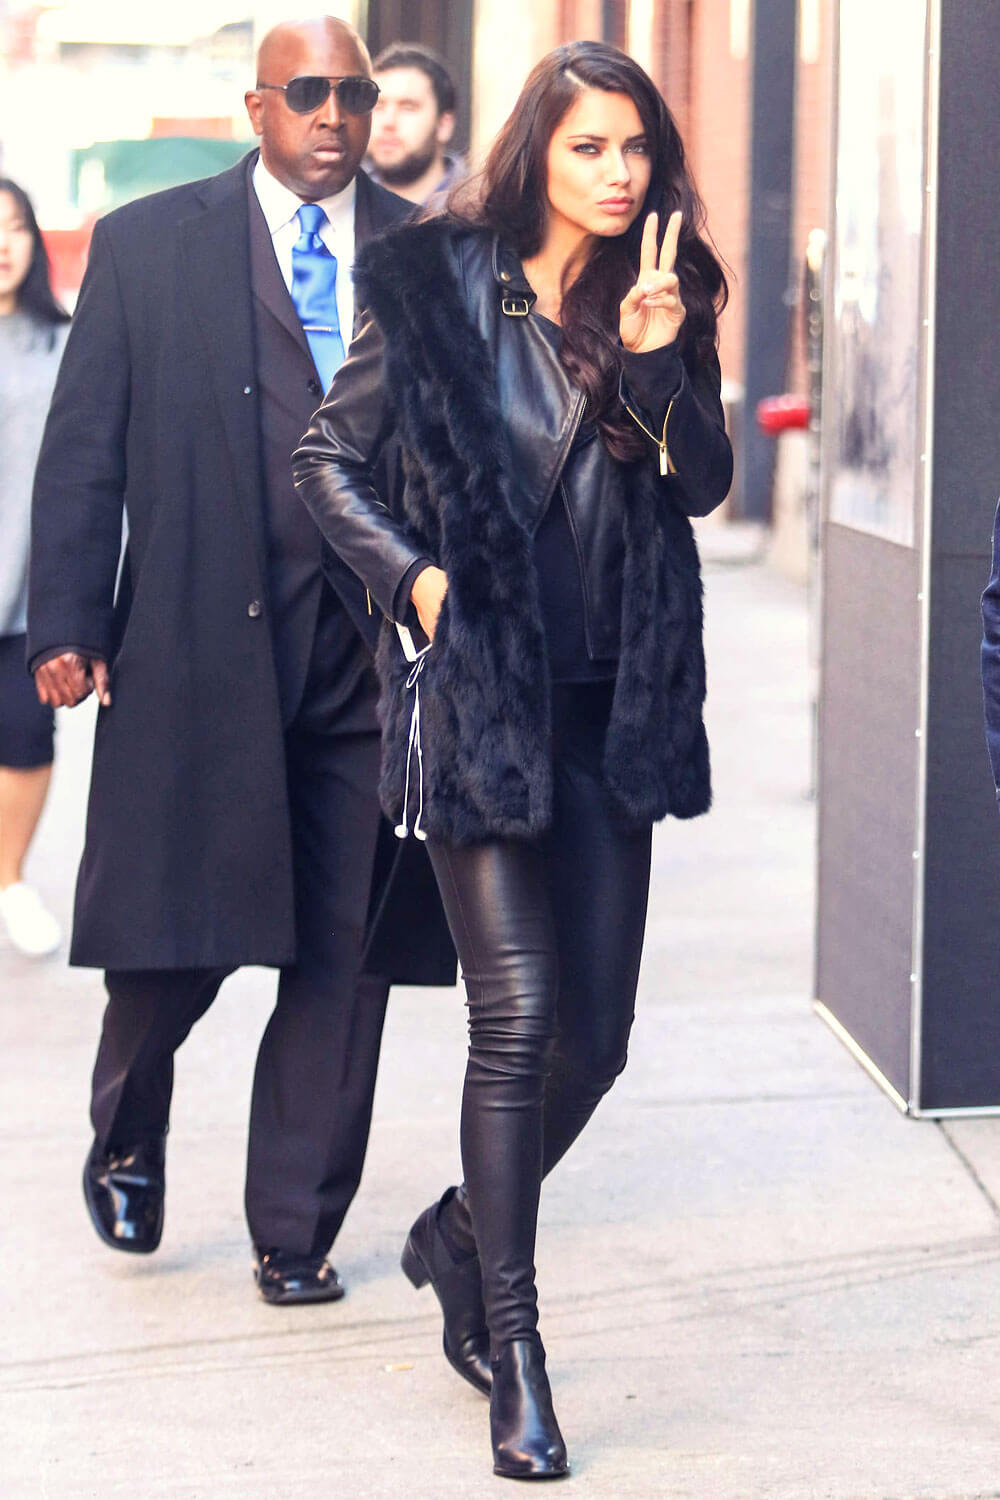 Adriana Lima headed to a photoshoot at Milk Studios